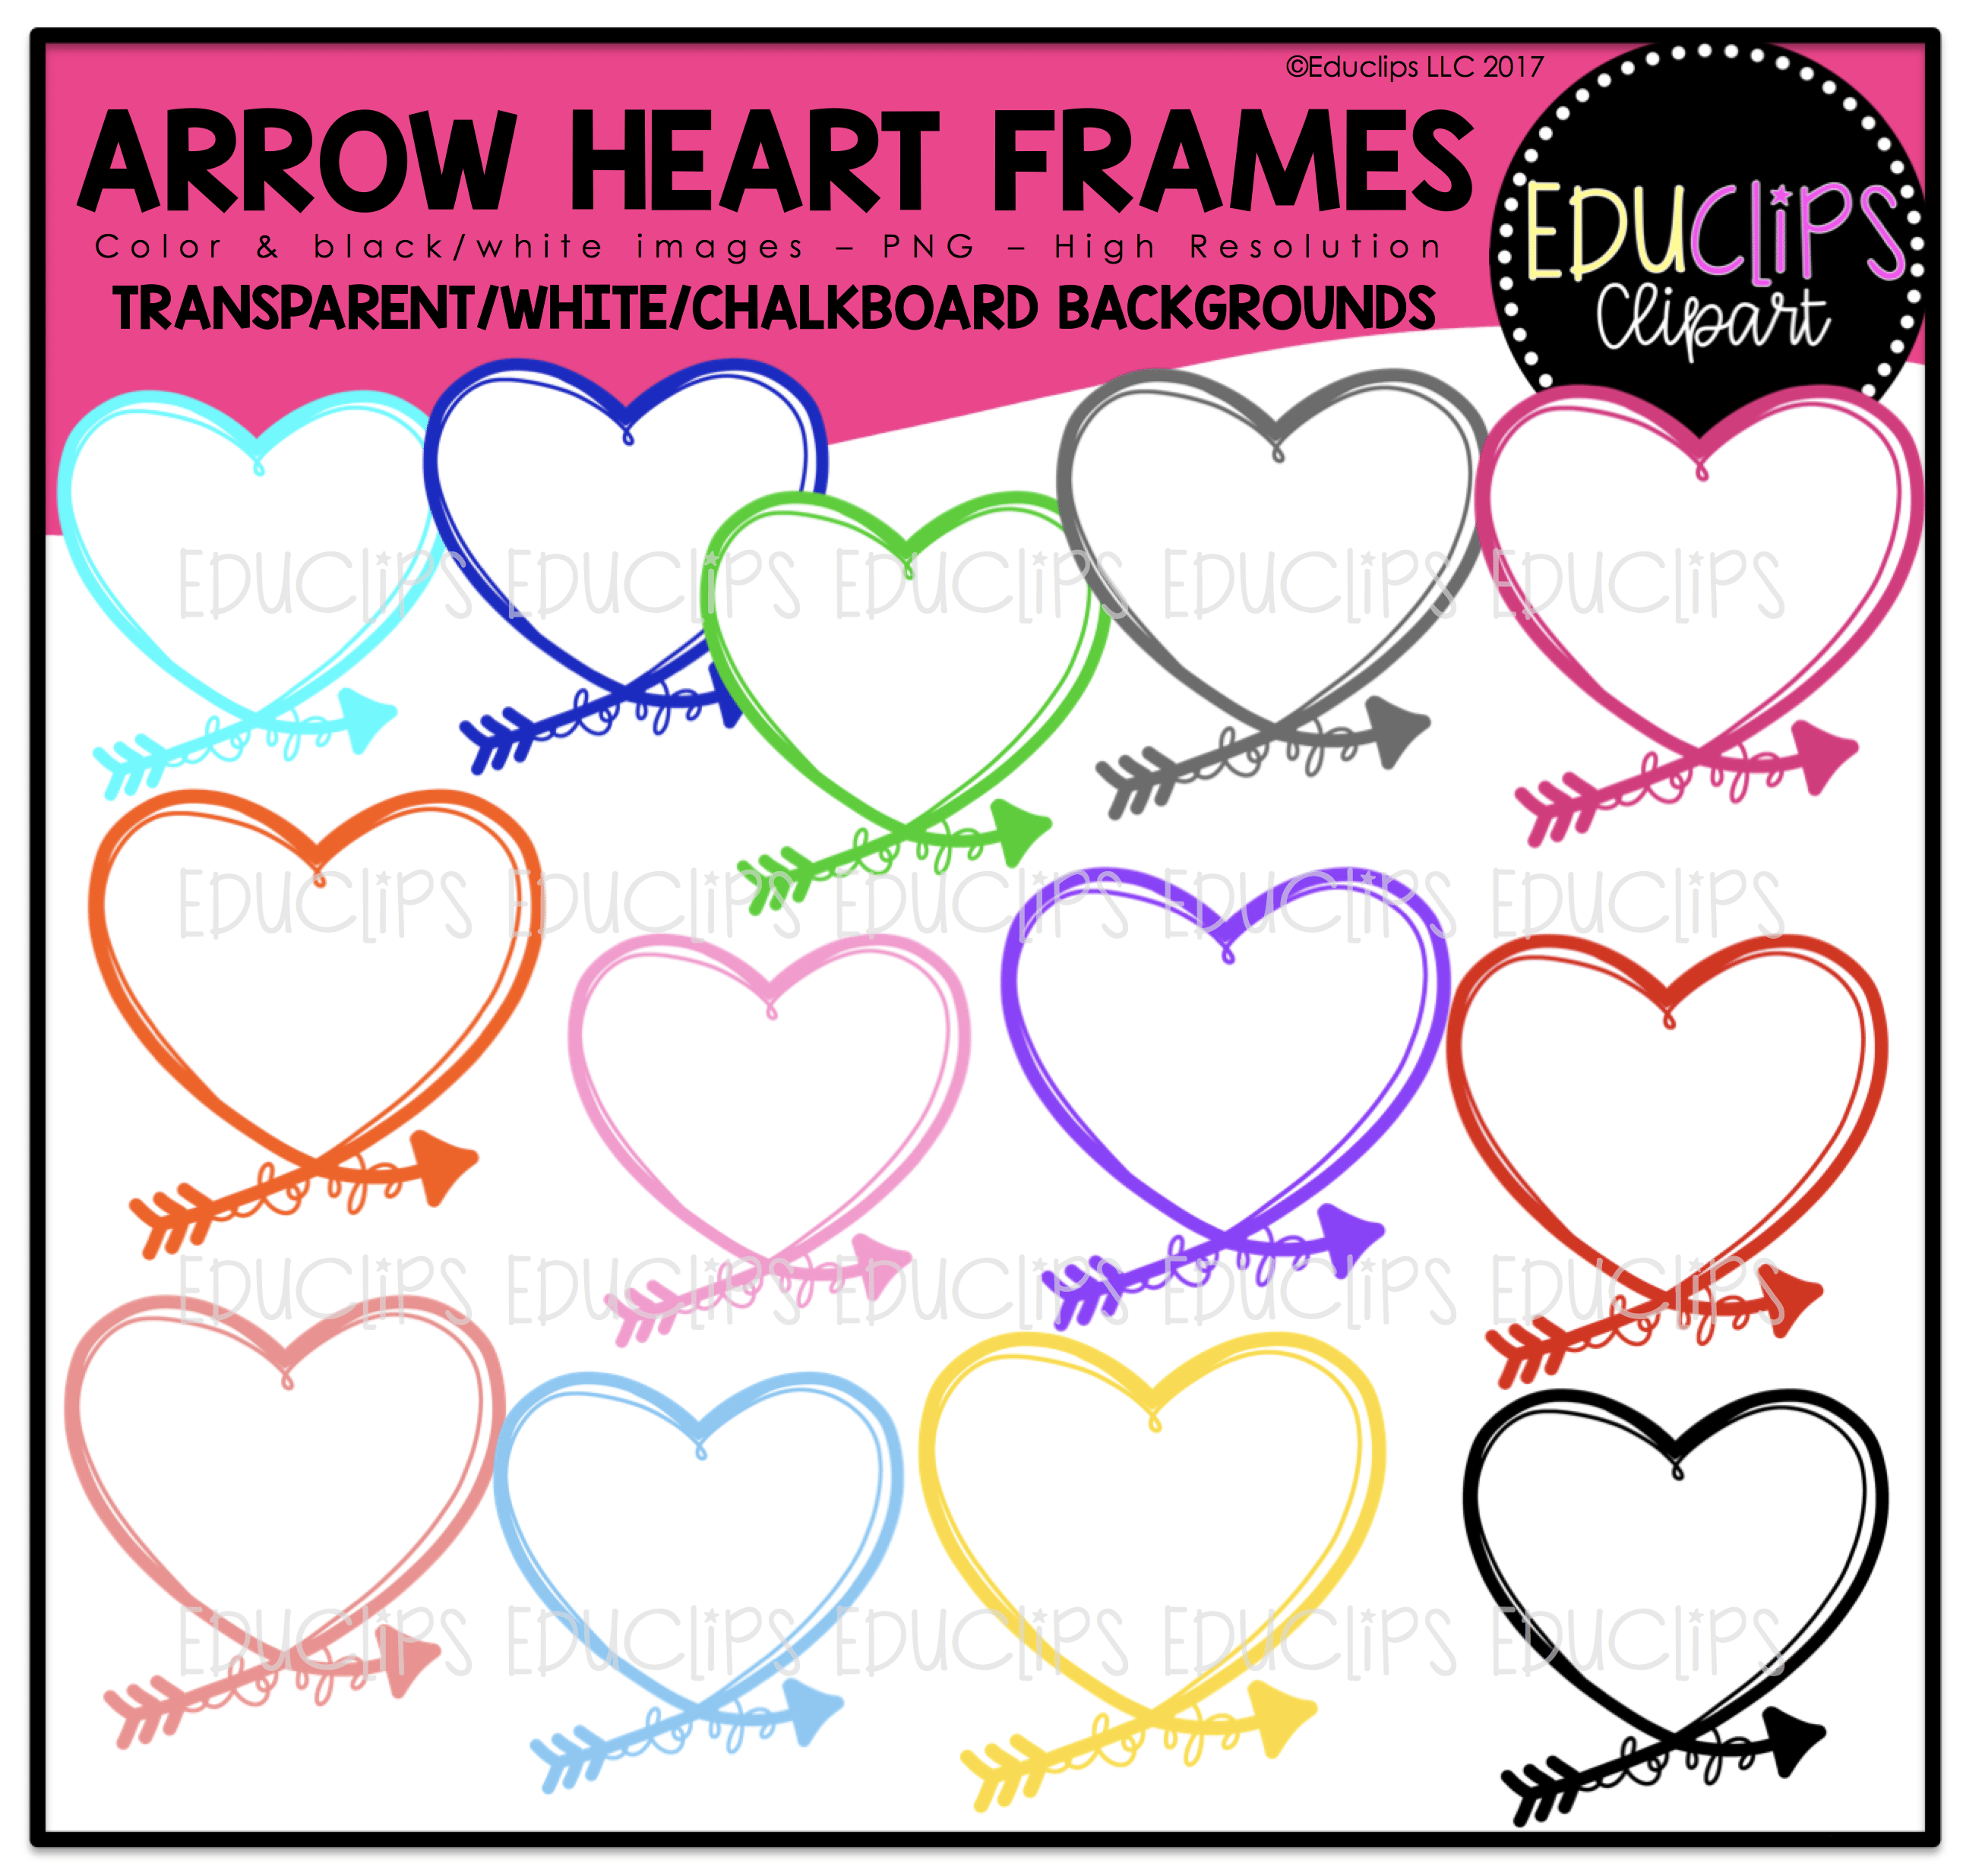 Arrow Heart Frames Clip Art Bundle - Welcome to Educlips Store